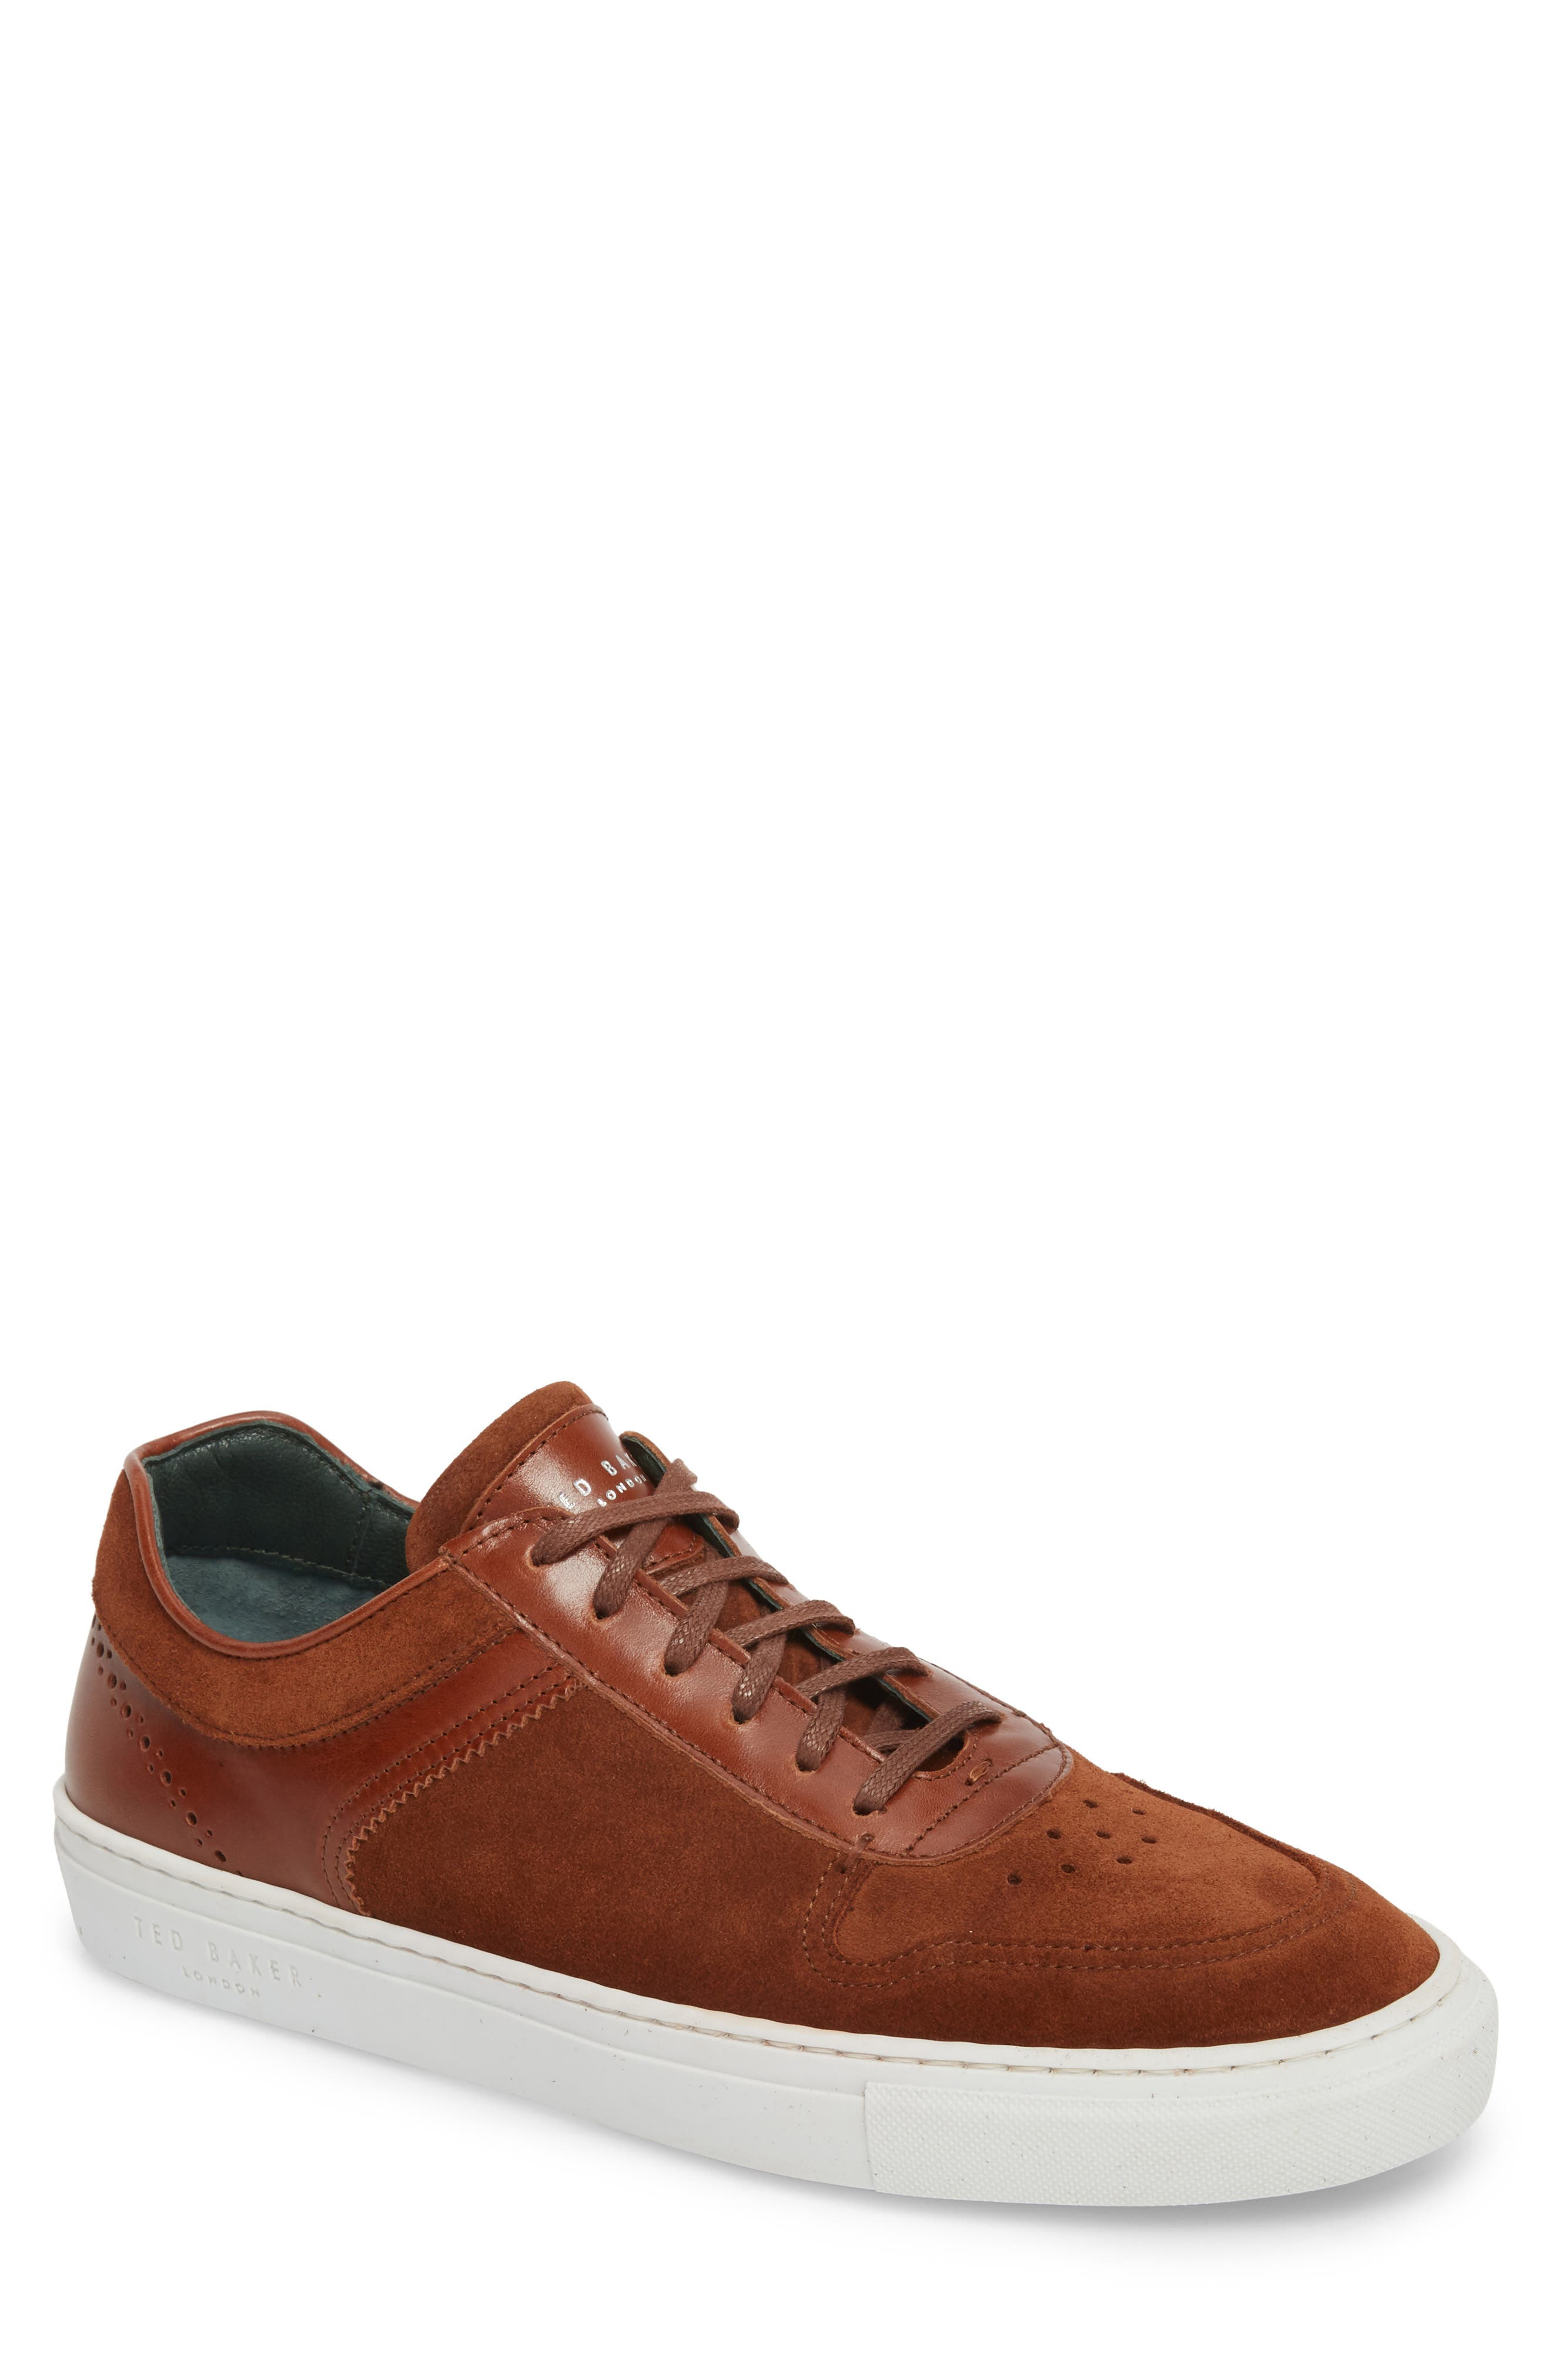 Burall Sneaker,                         Main,                         color, Dark Tan Suede